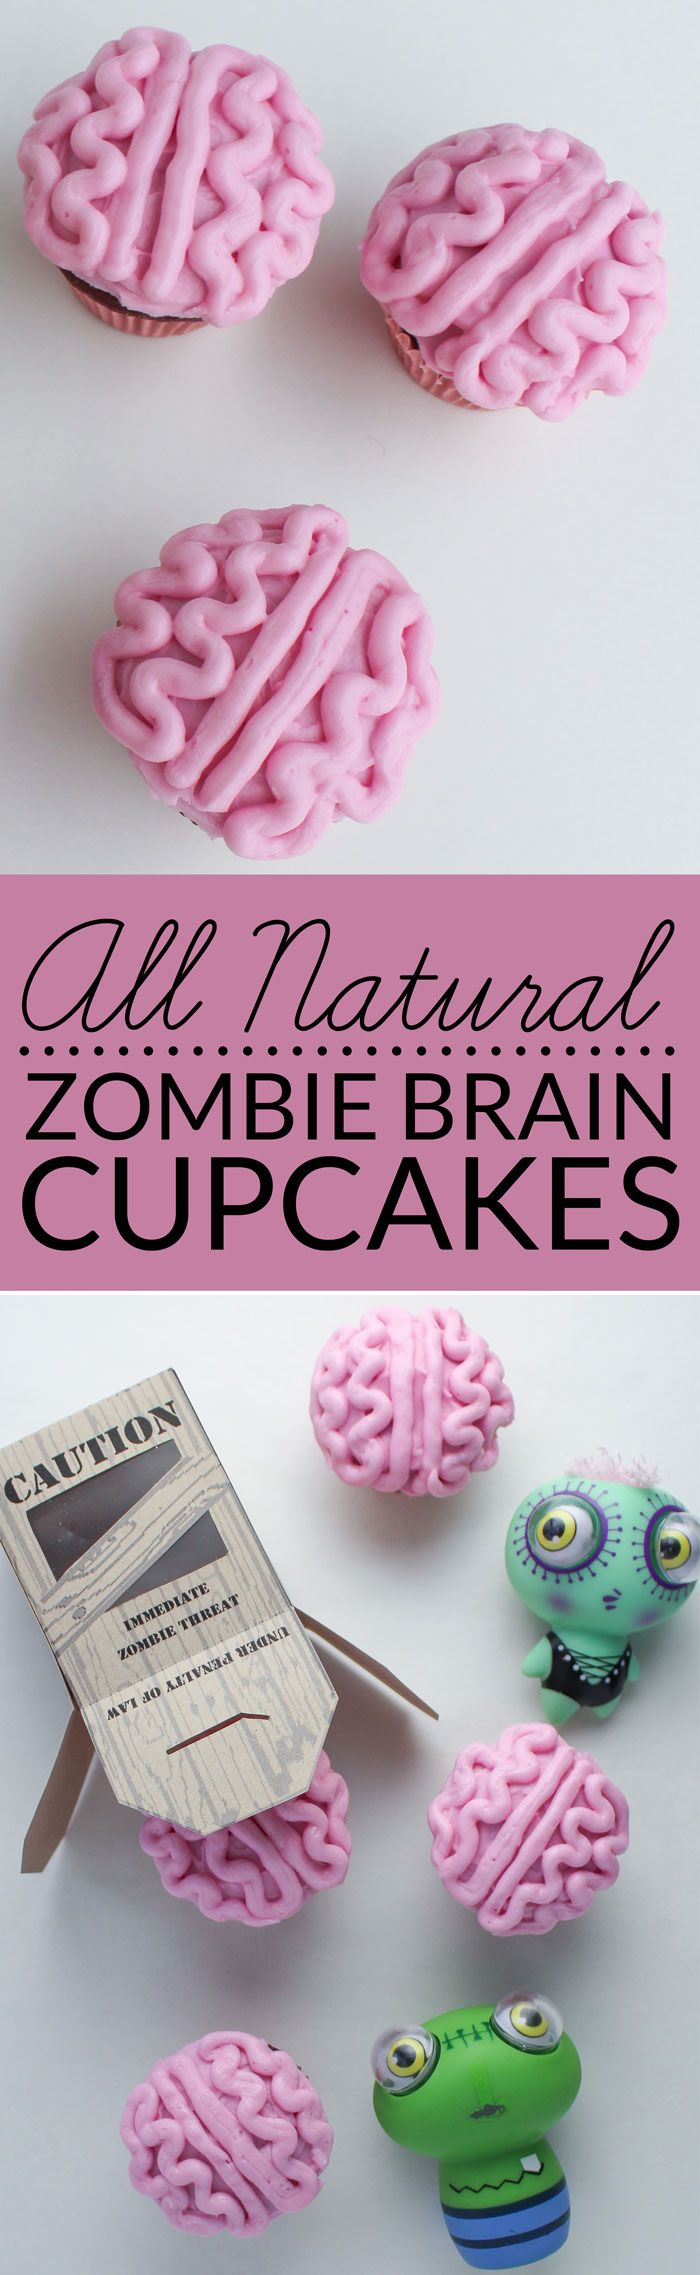 This fun and healthy Halloween cupcake recipe contains no artificial color or dye and is still blood red! Celebrate everything zombie and goolish this Halloween or host a the Walking Dead party. Get a free printable zombie containment crate. #Netflix #zombies